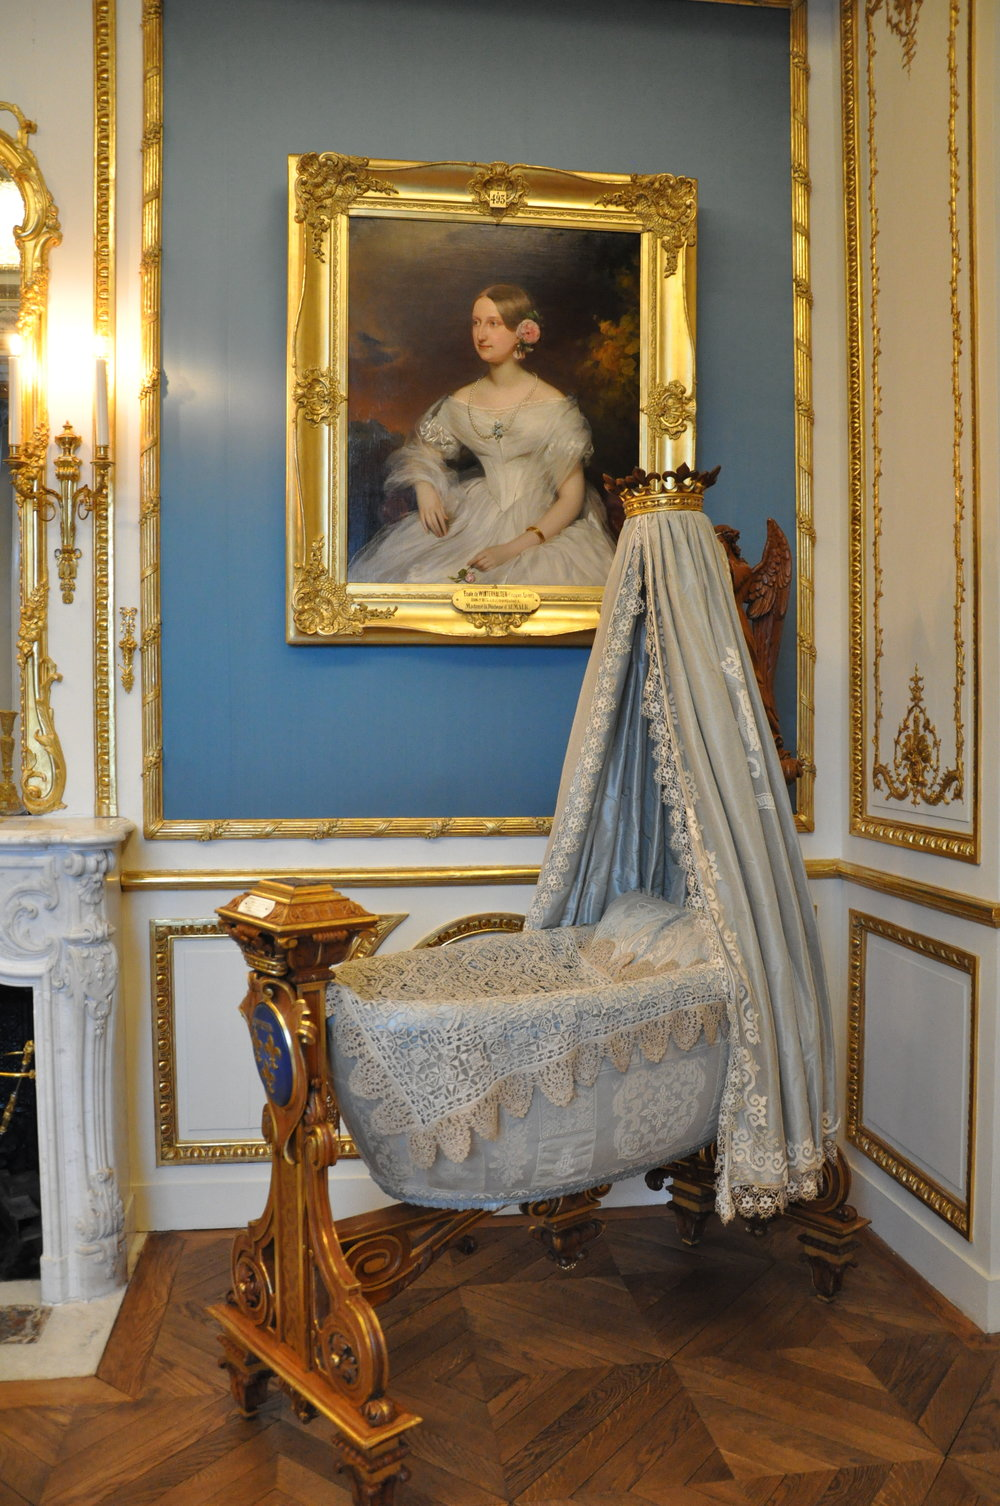 Duke of Guise's cradle in the Duchess' bedroom with portrait of his mother, Marie-Caroline-Augusta de Bourbon-Siciles, Duchess of Aumale (1822-1869) by Franz Schrotzberg © Grand Palais Domaine de Chantilly